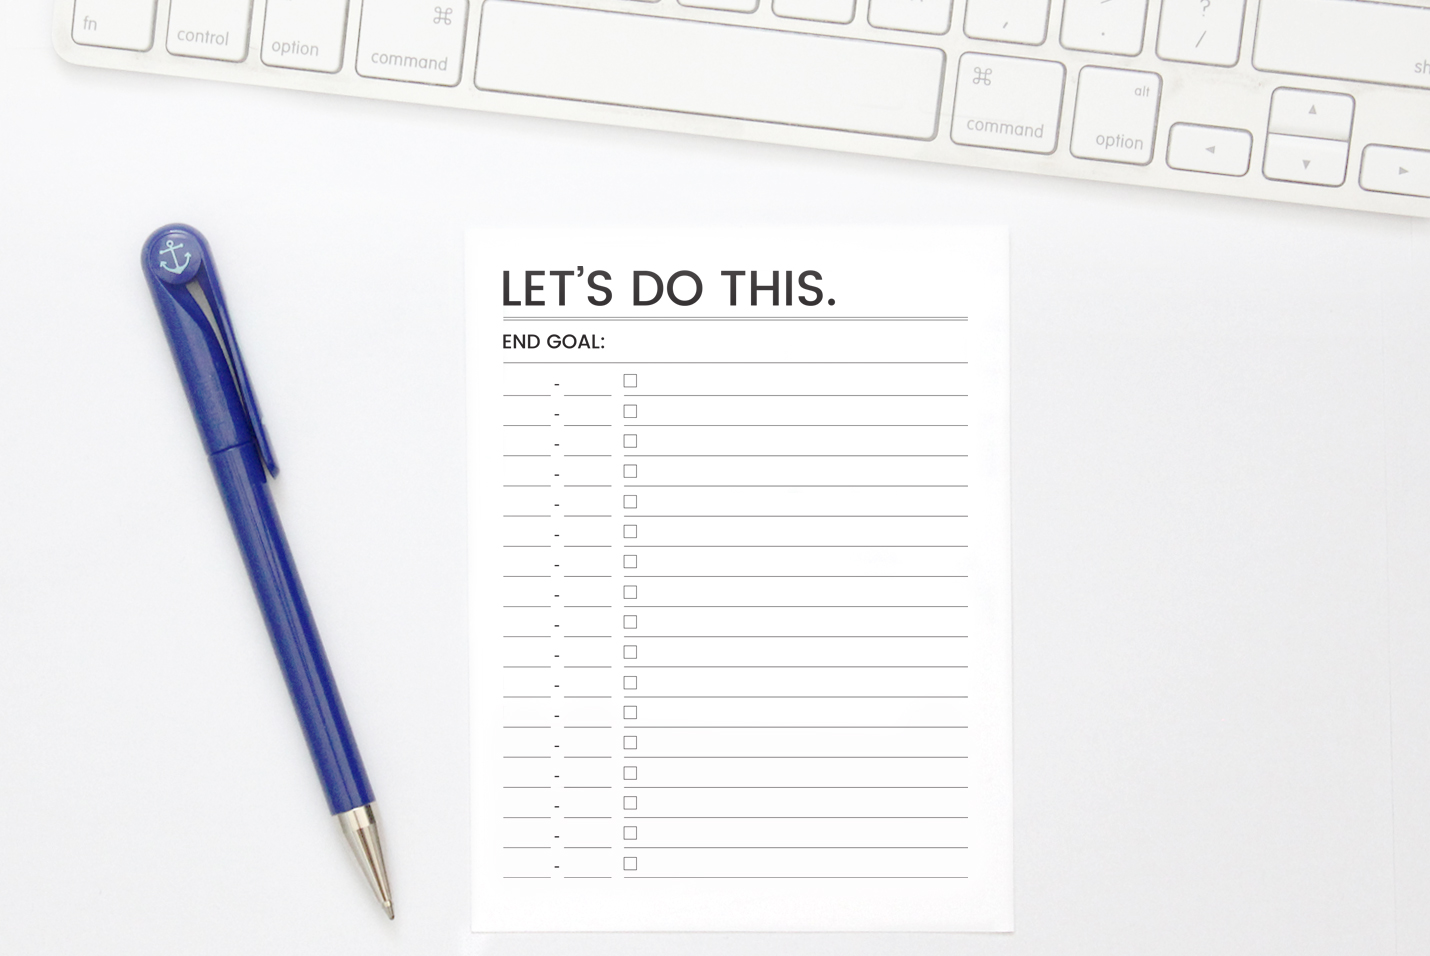 Let's Do This. - Productivity Planners | kbarlowdesign.com